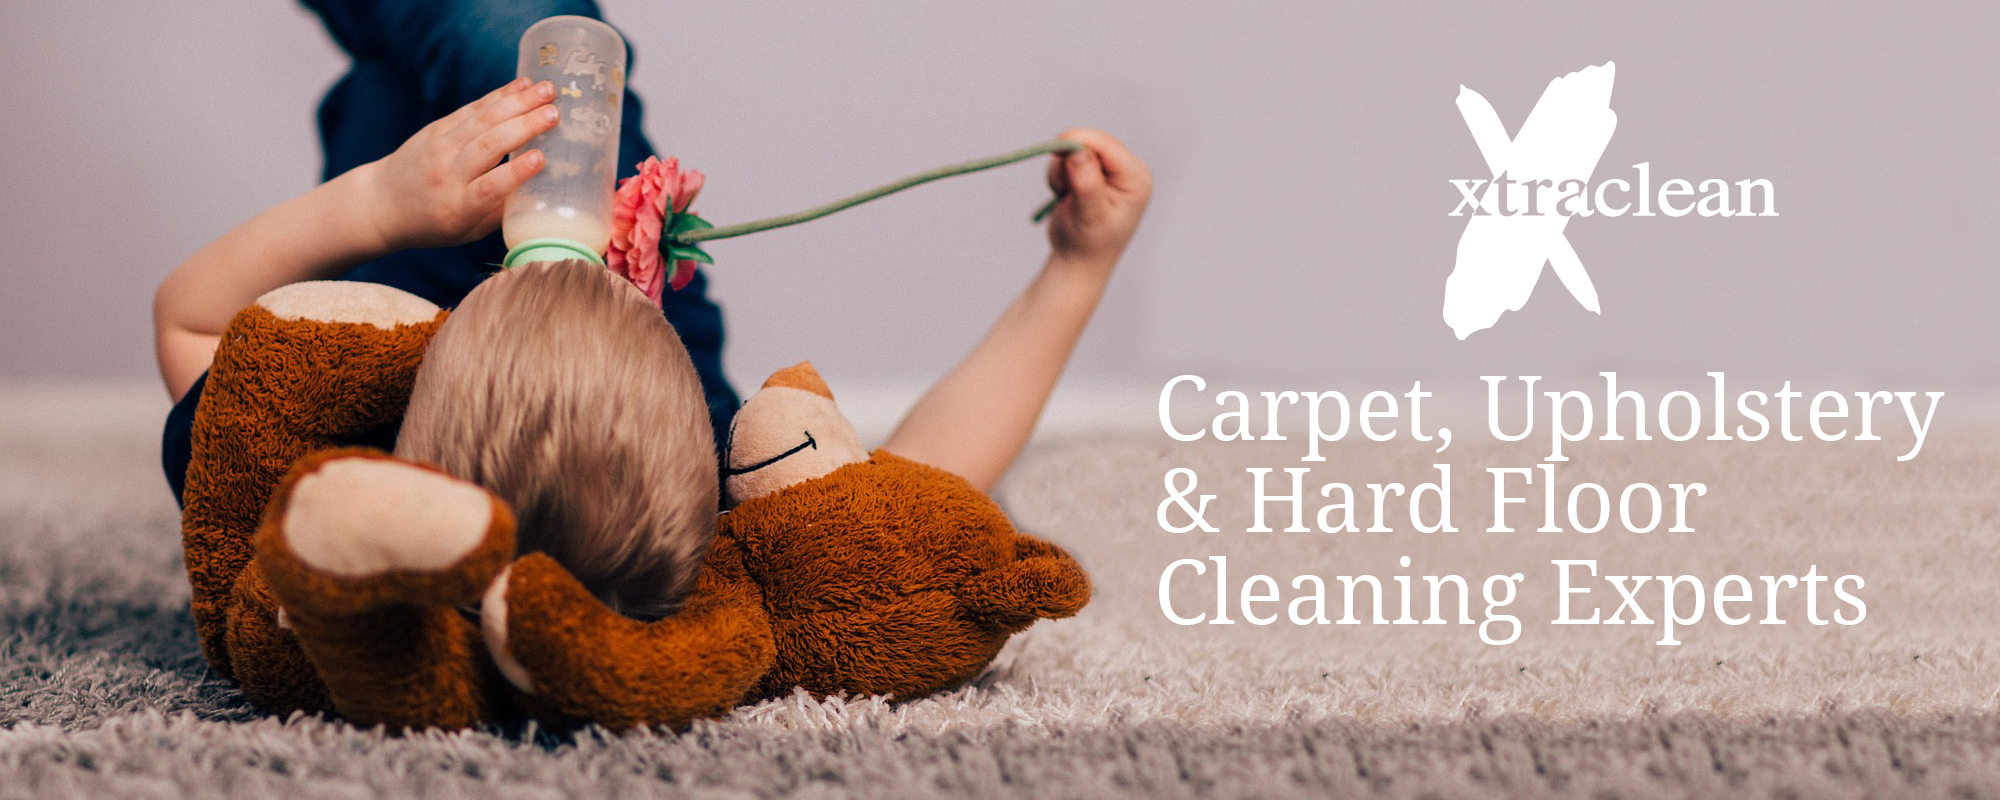 Carpet, upholstery and hard floor cleaning knowledge from Xtraclean